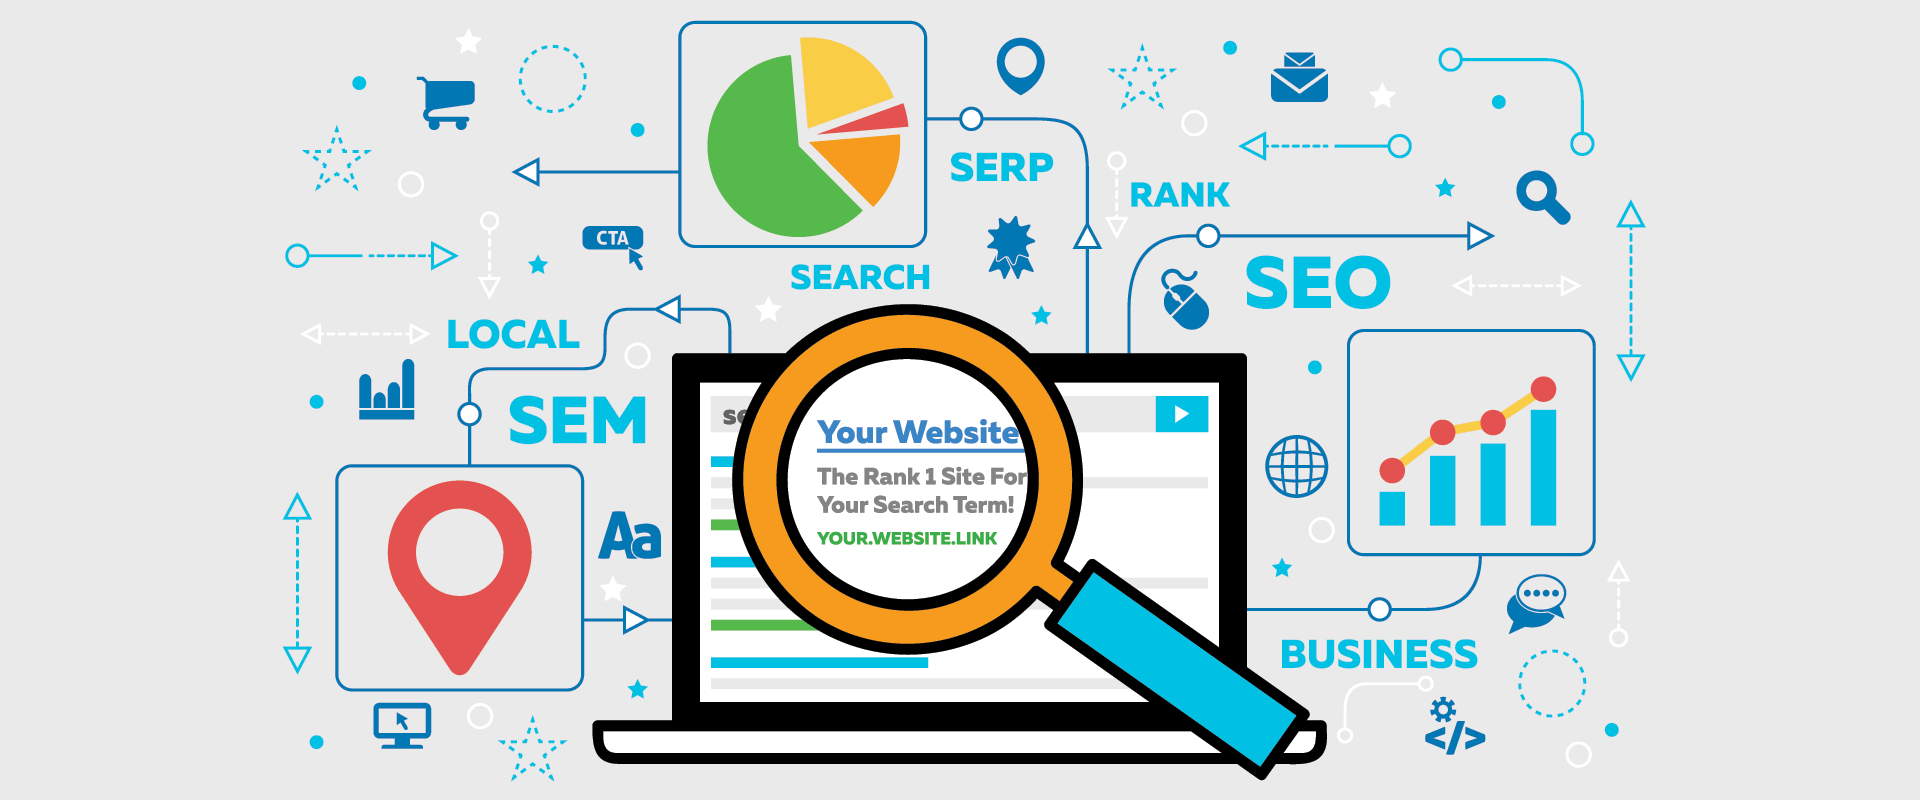 How SEO plays an important role in your business?